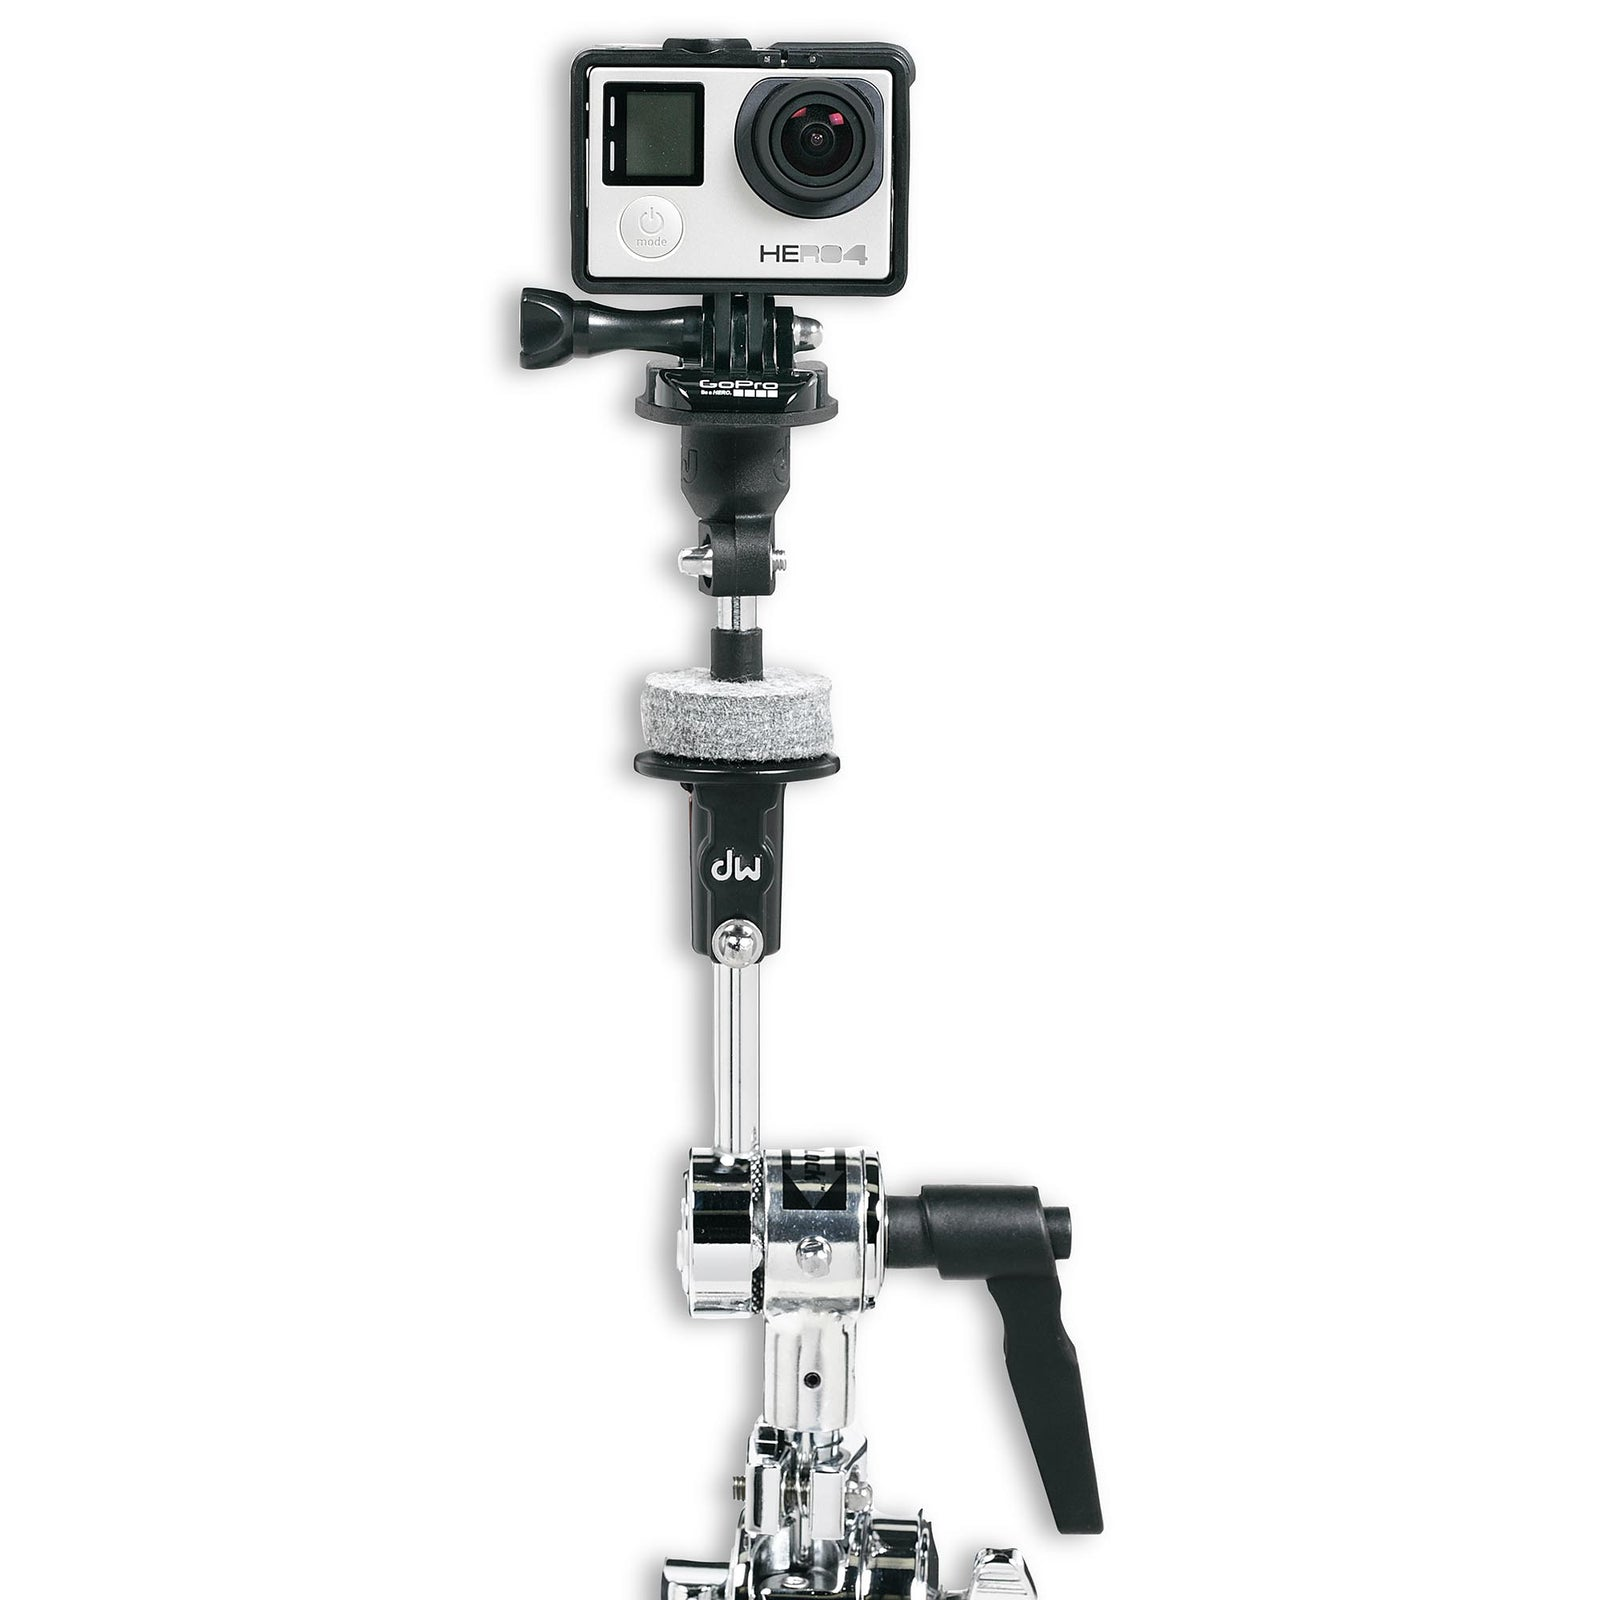 Drum Workshop Go Pro Camera Mount - Image: 1